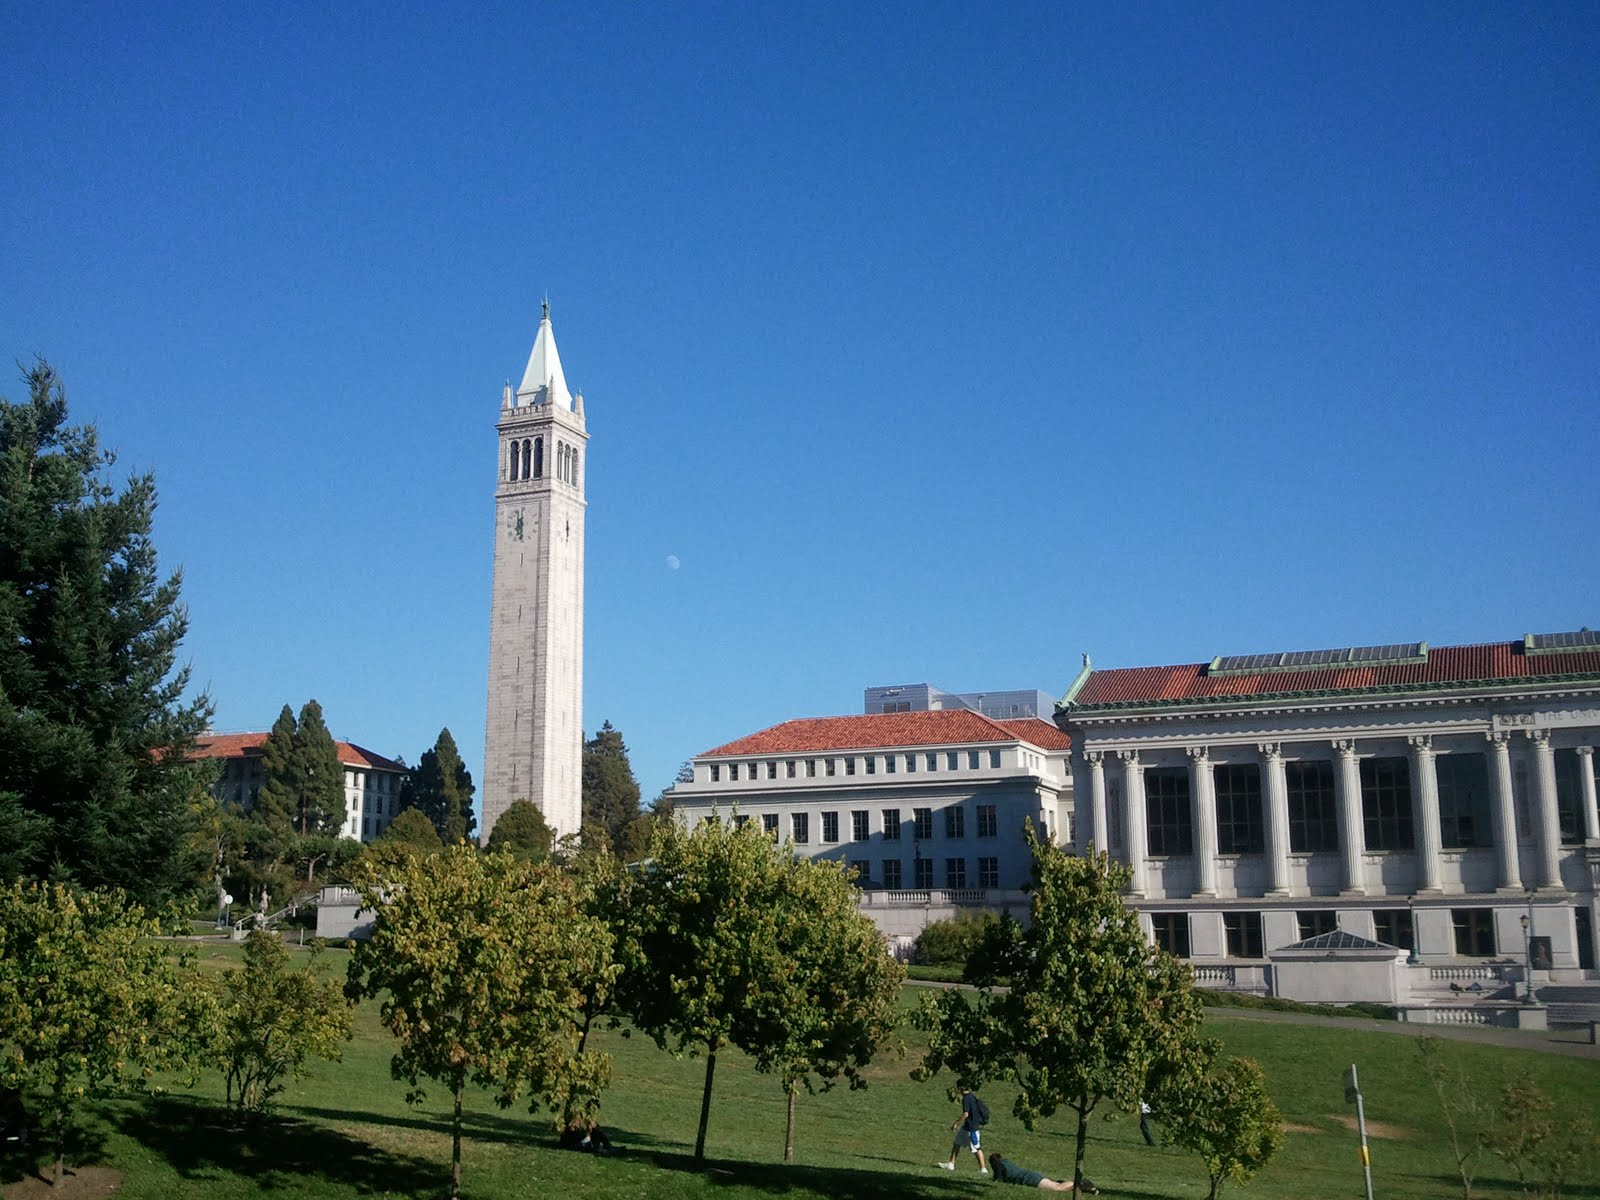 Uc Berkeley Wallpaper 1600x1200